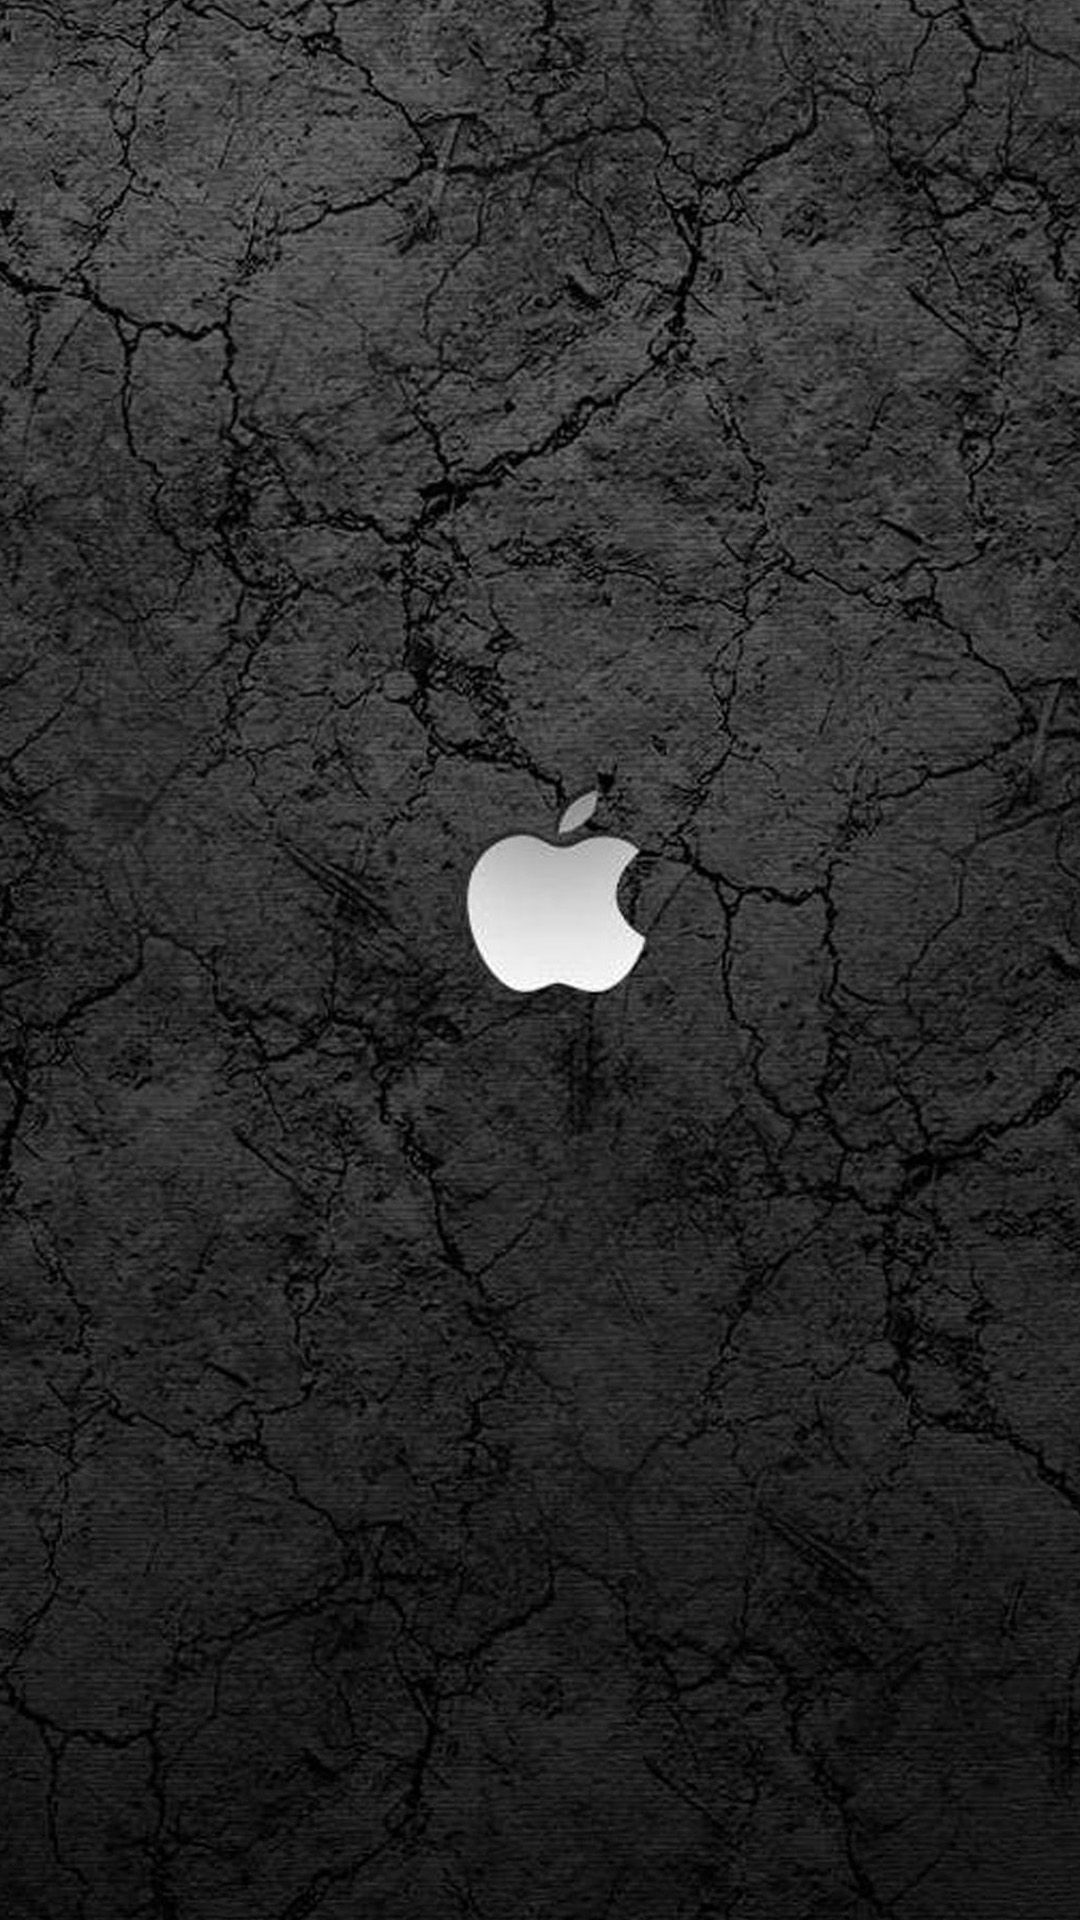 Apple wallpaper iphone by Prem Sagar on IPhone Wallpaper